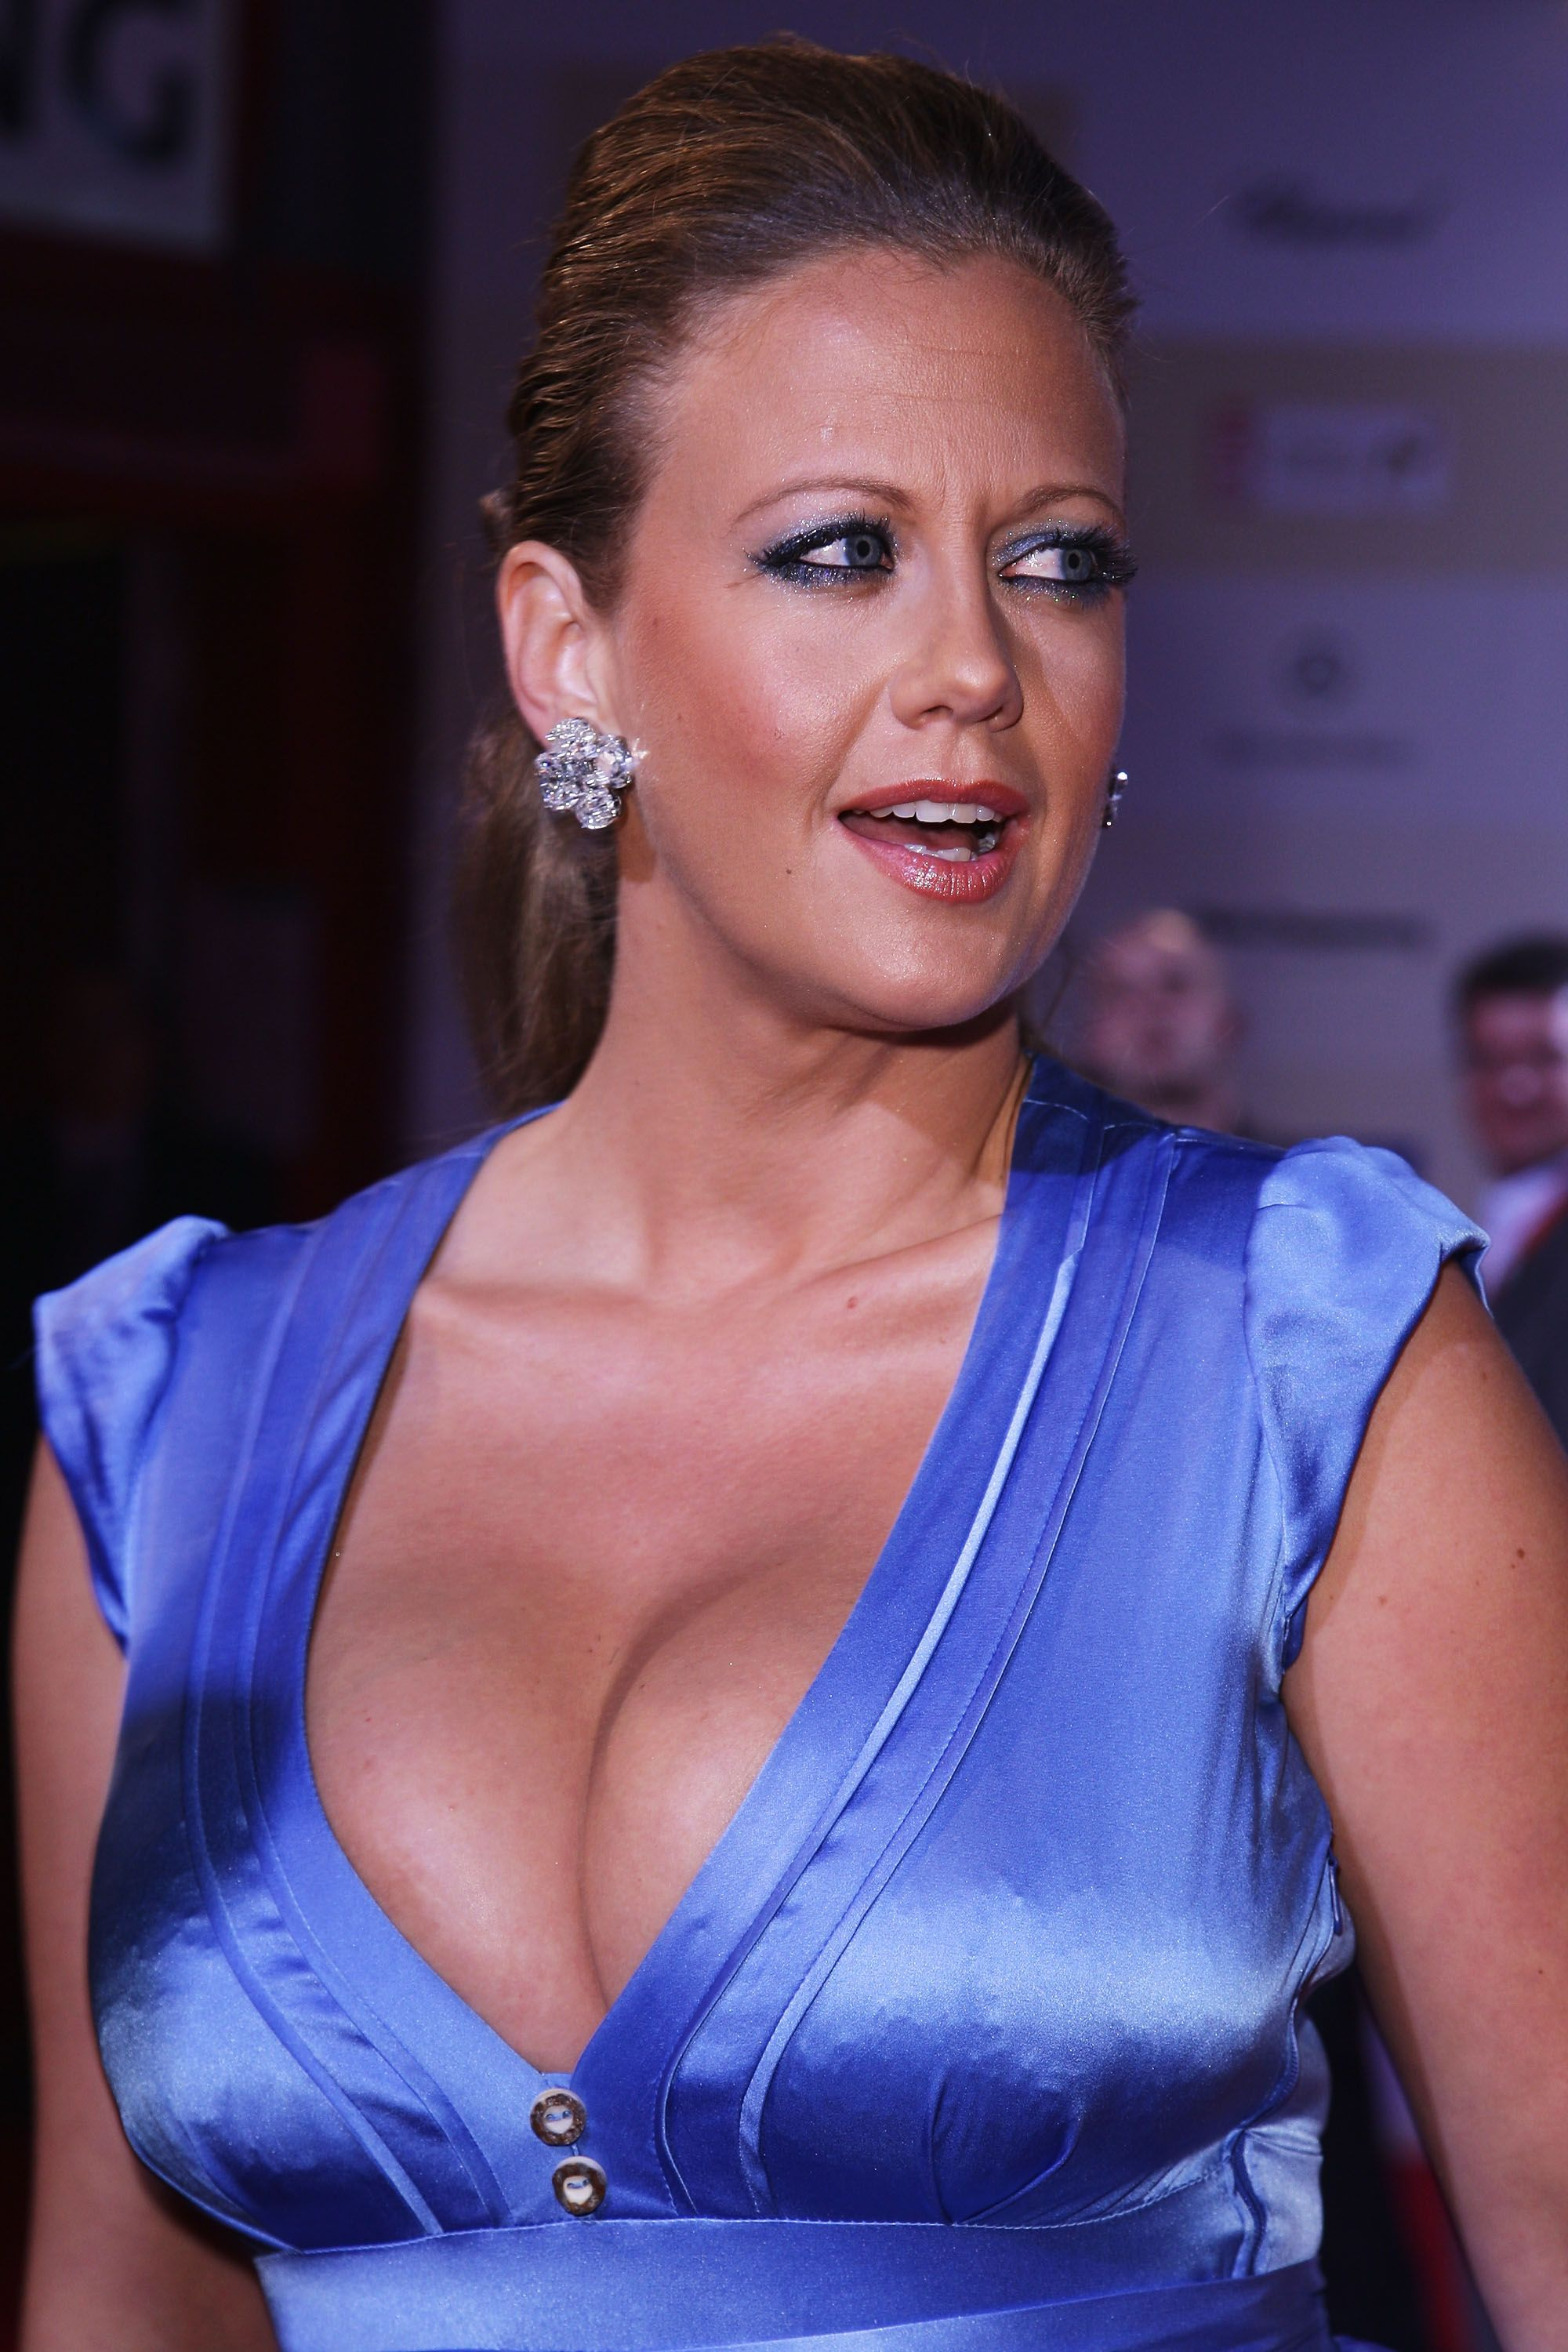 TV Host Barbara Schoeneberger attends the Tribute to Bambi 2008 charity at the Dome in Europapark